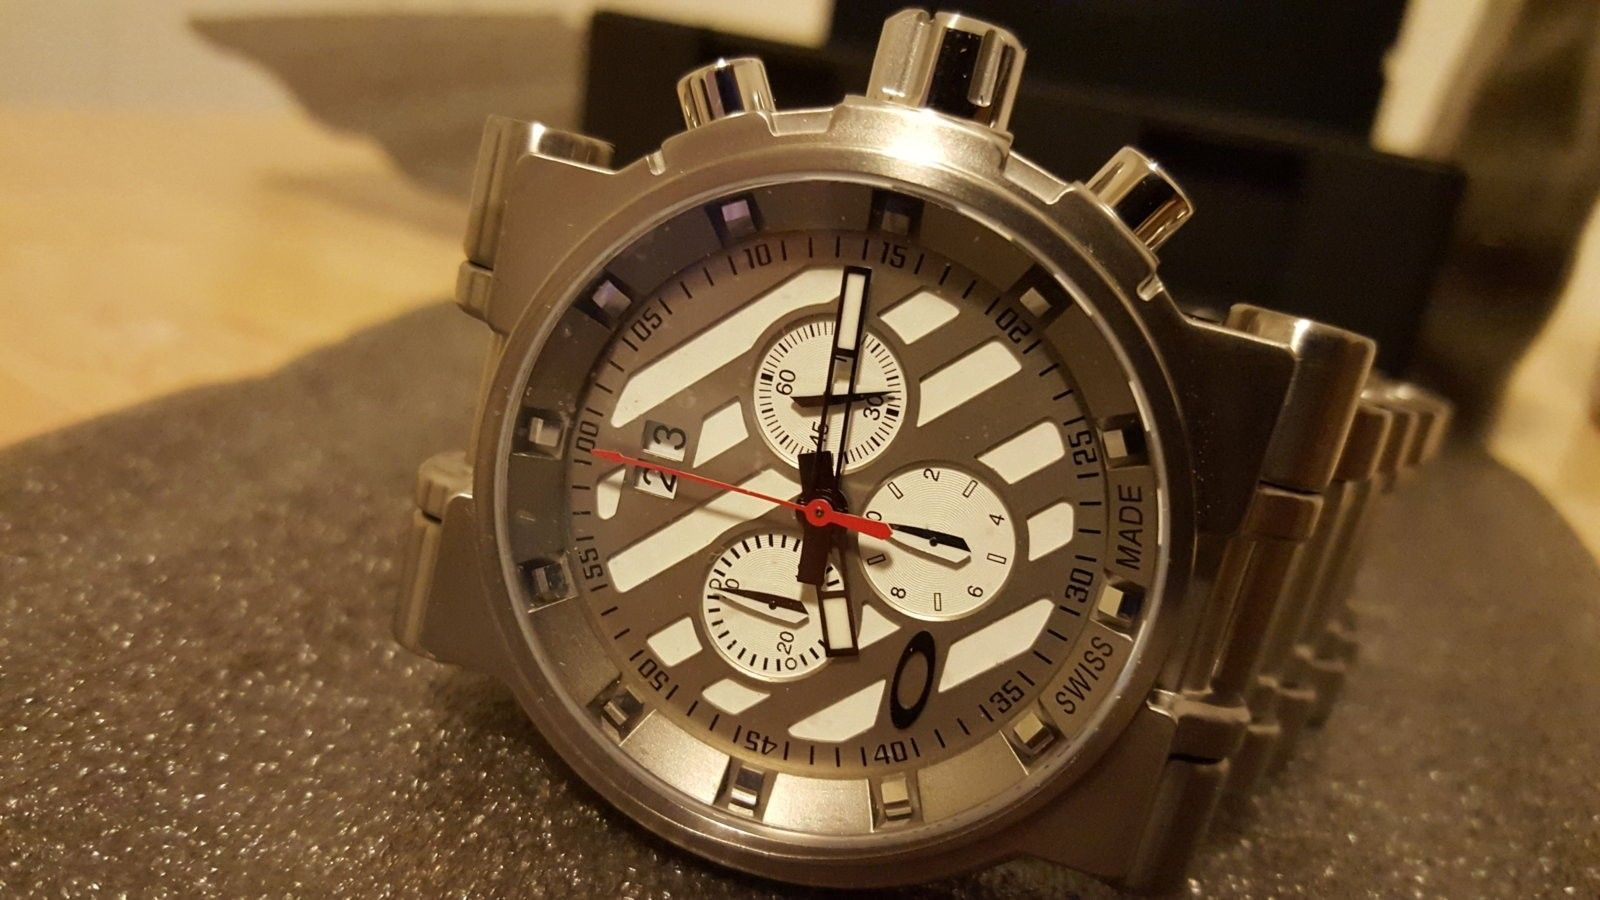 BNIB White Dial Hollow Point Watch $980 Shipped - 20160326_191647.jpg